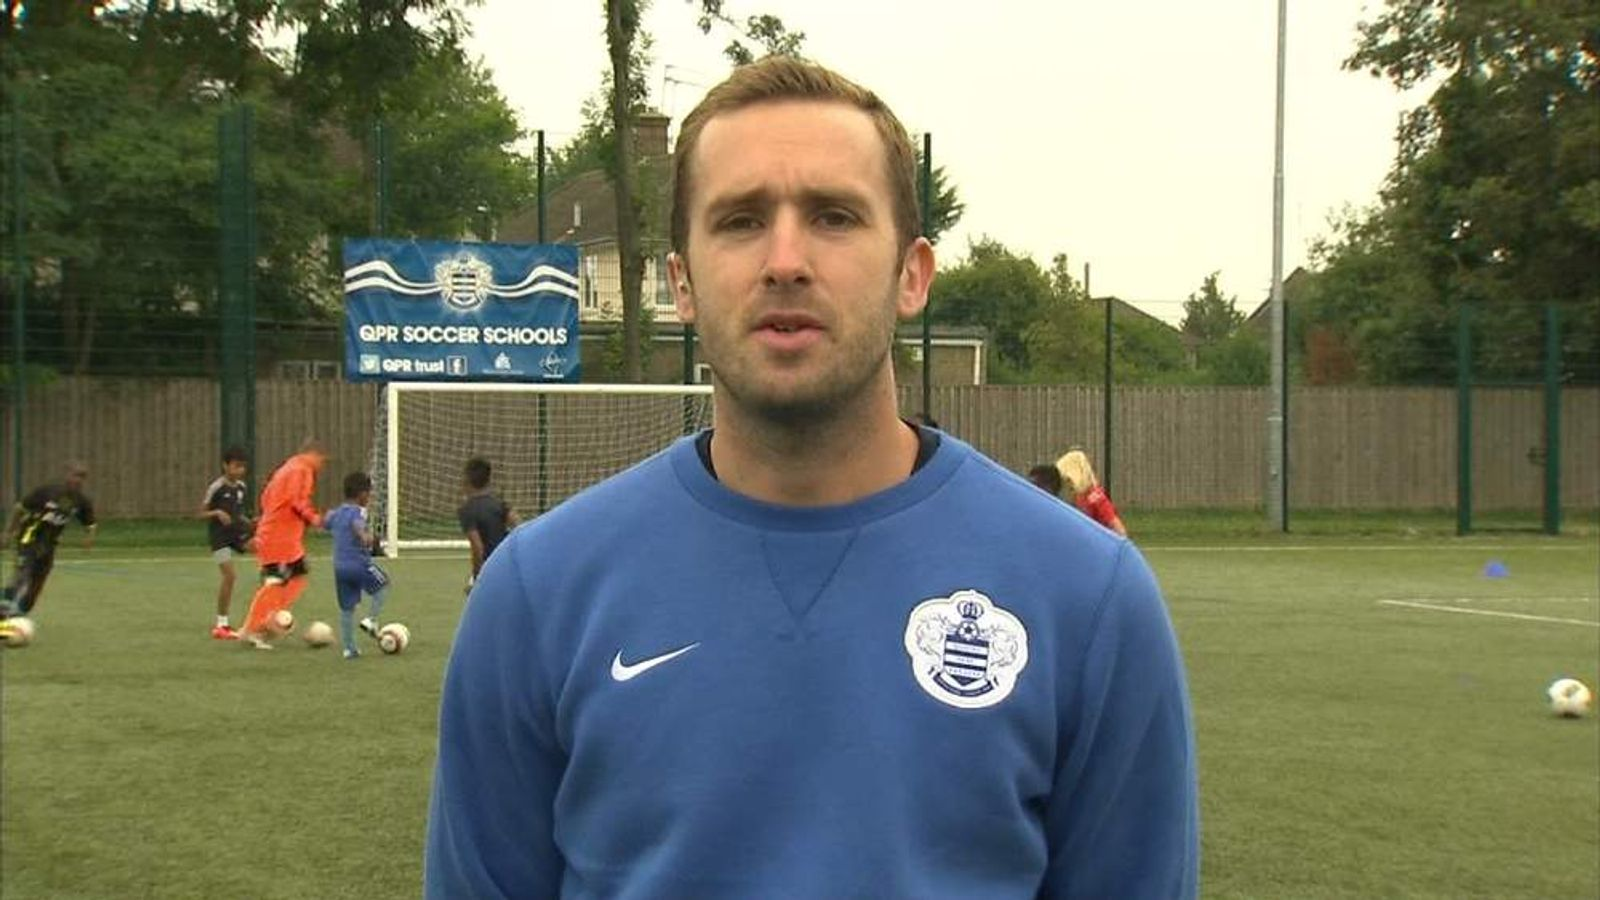 QPR Football Development Manager Steve McCarthy